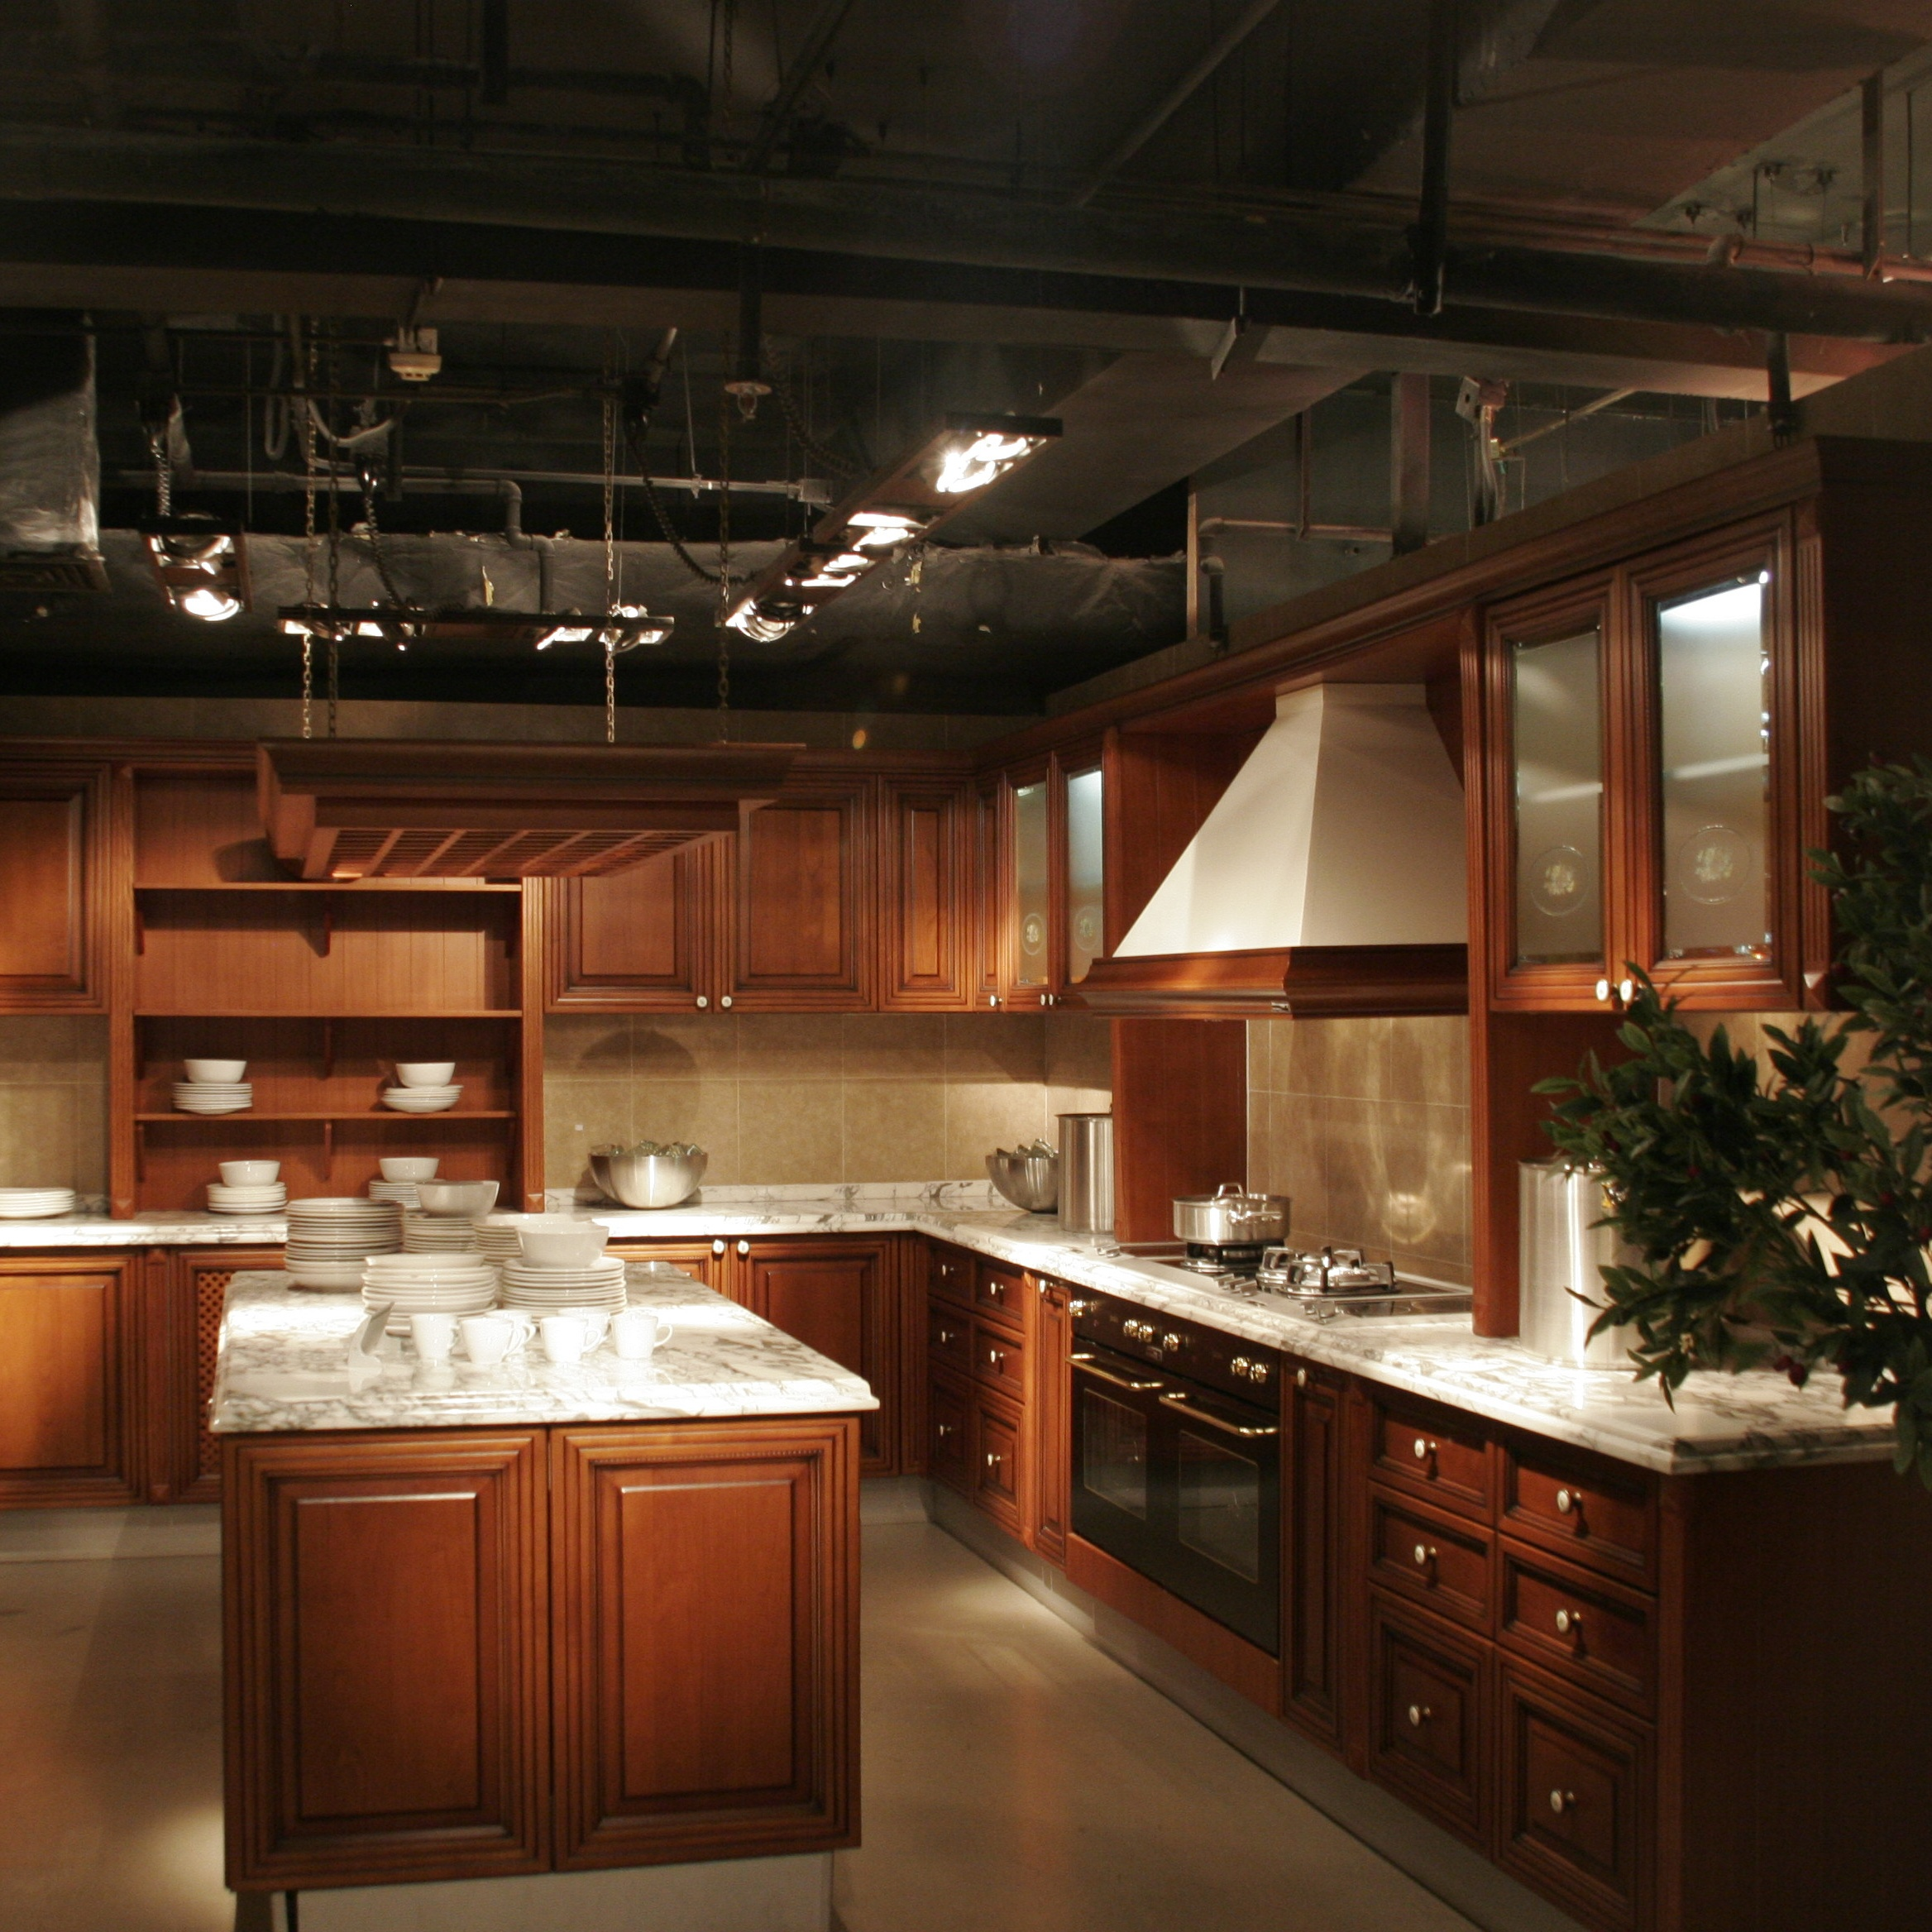 Solid Wood Kitchen Cabinets Buy Kitchen Cabinet Wooden Kitchen Cbainet Cherry Wood Kitchen Cabinets Product On Alibaba Com